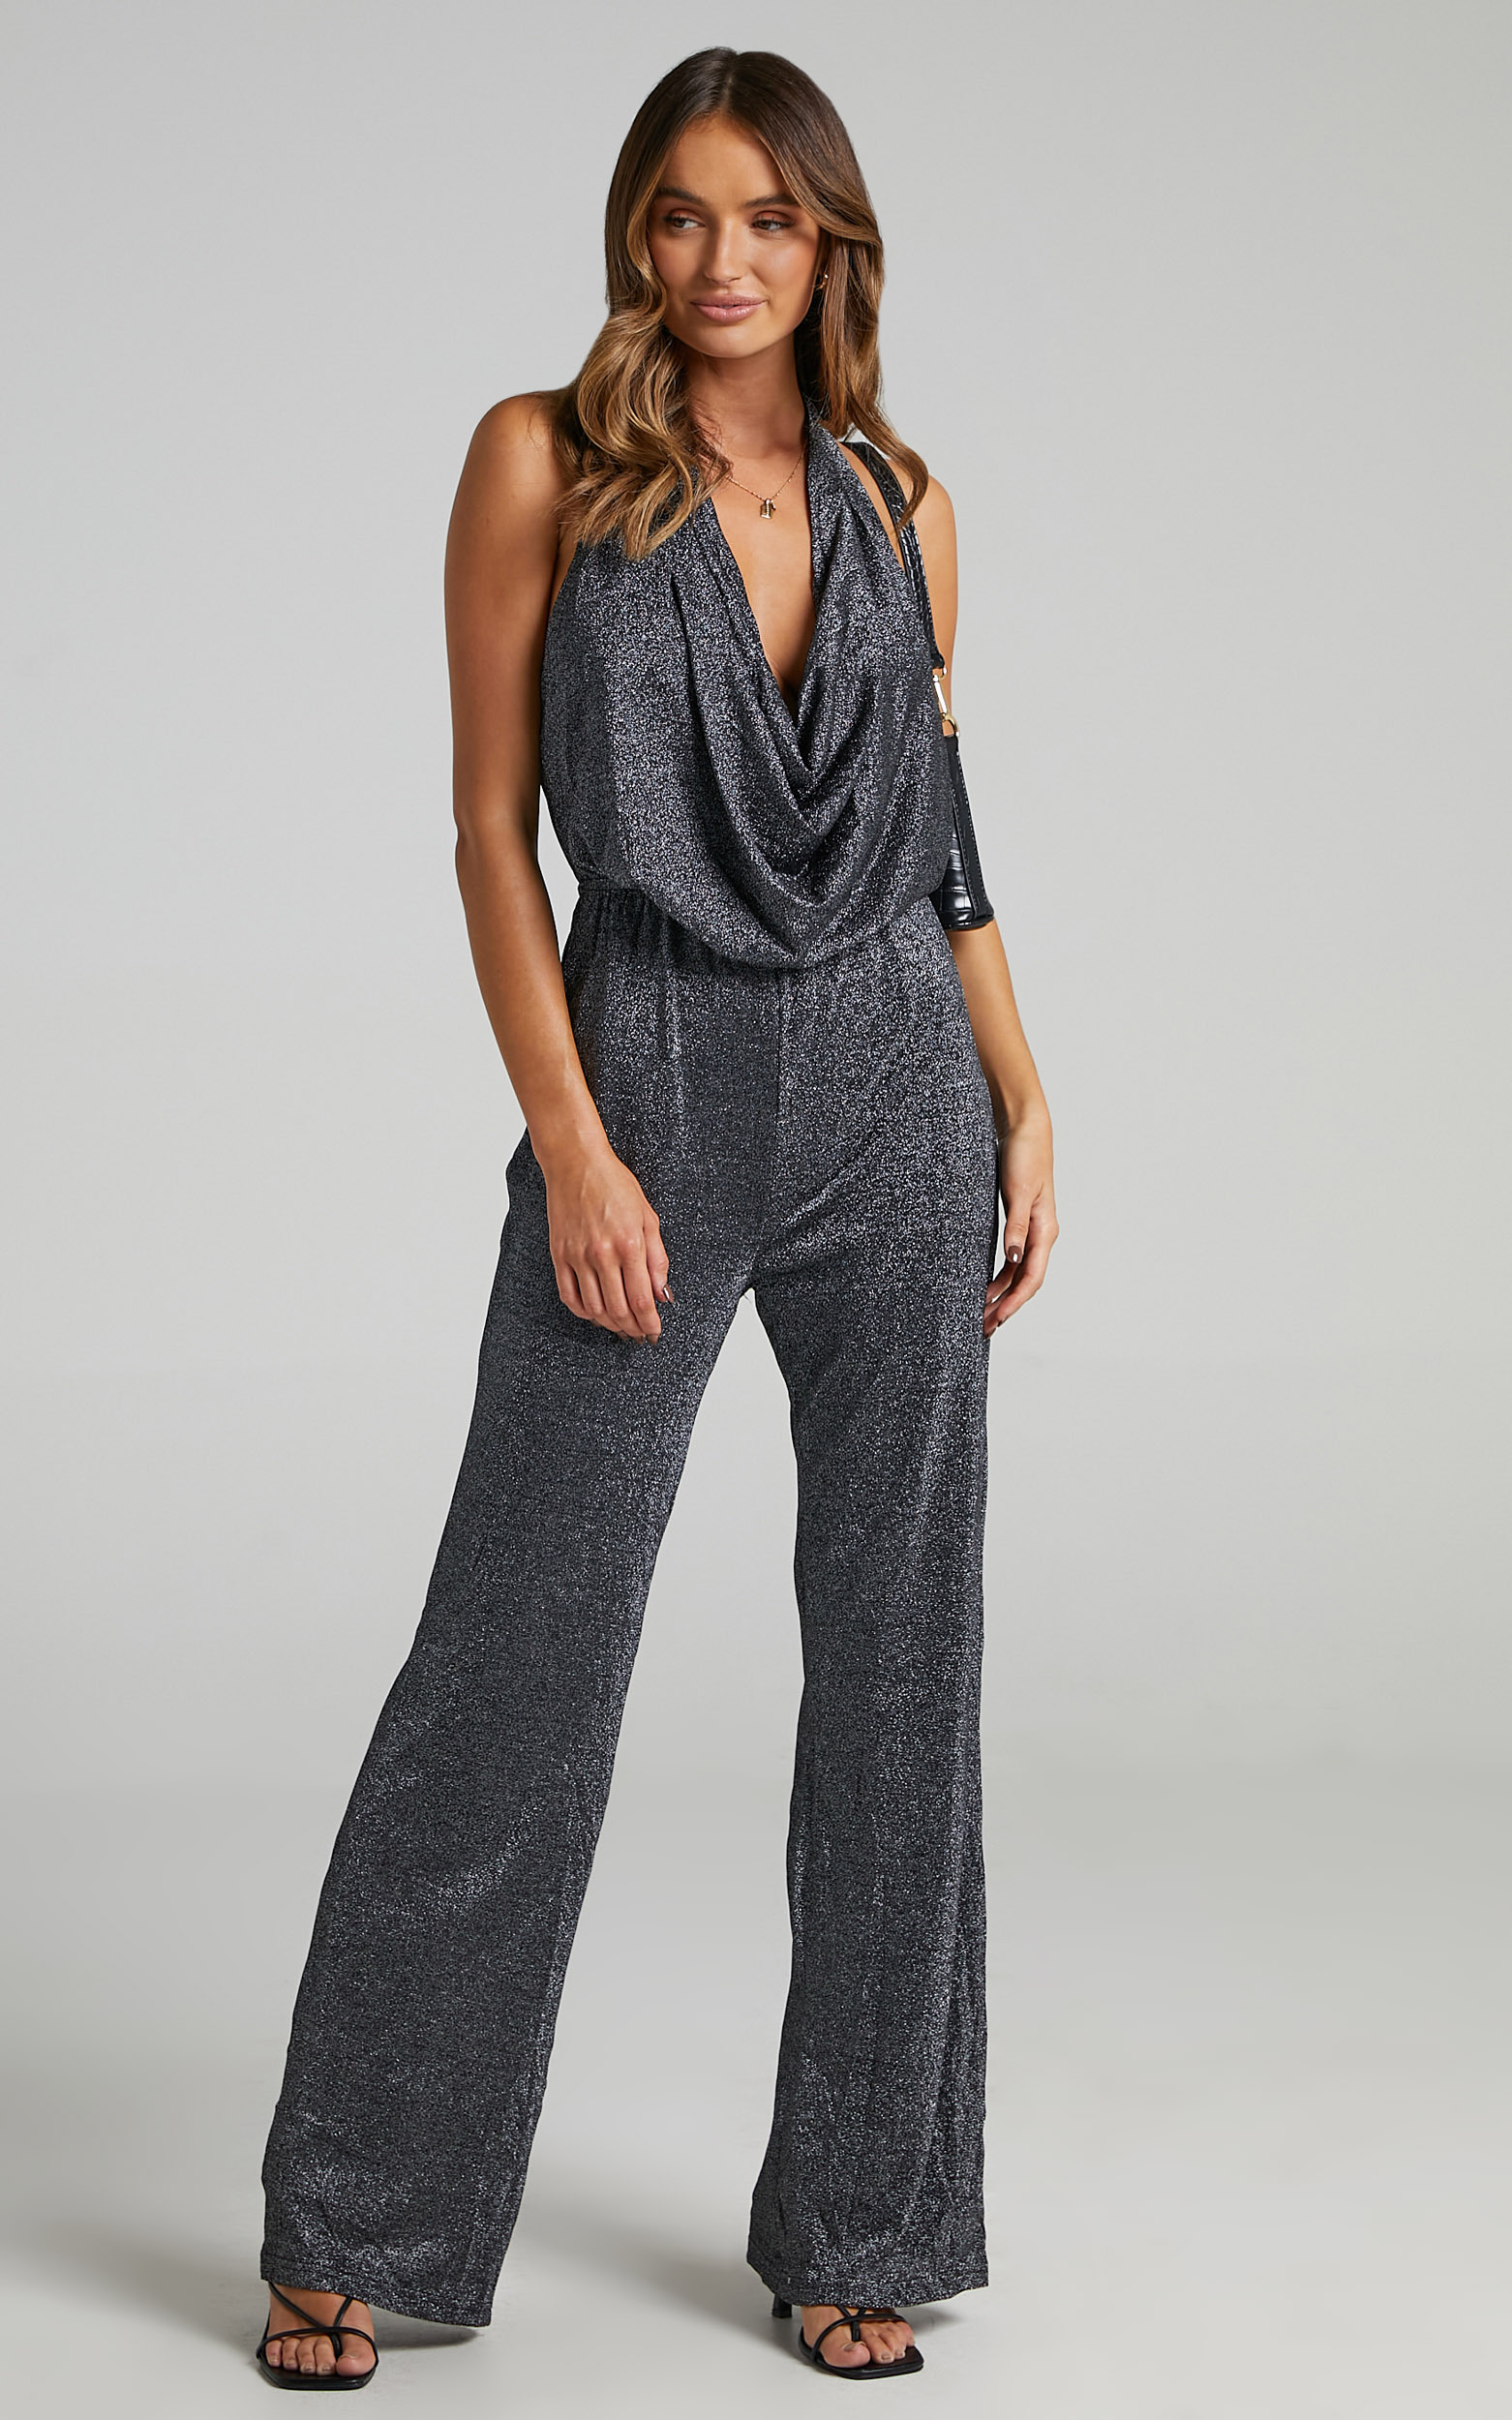 Amaliee Cowl Front Jumpsuit in Black - 16, BLK1, hi-res image number null